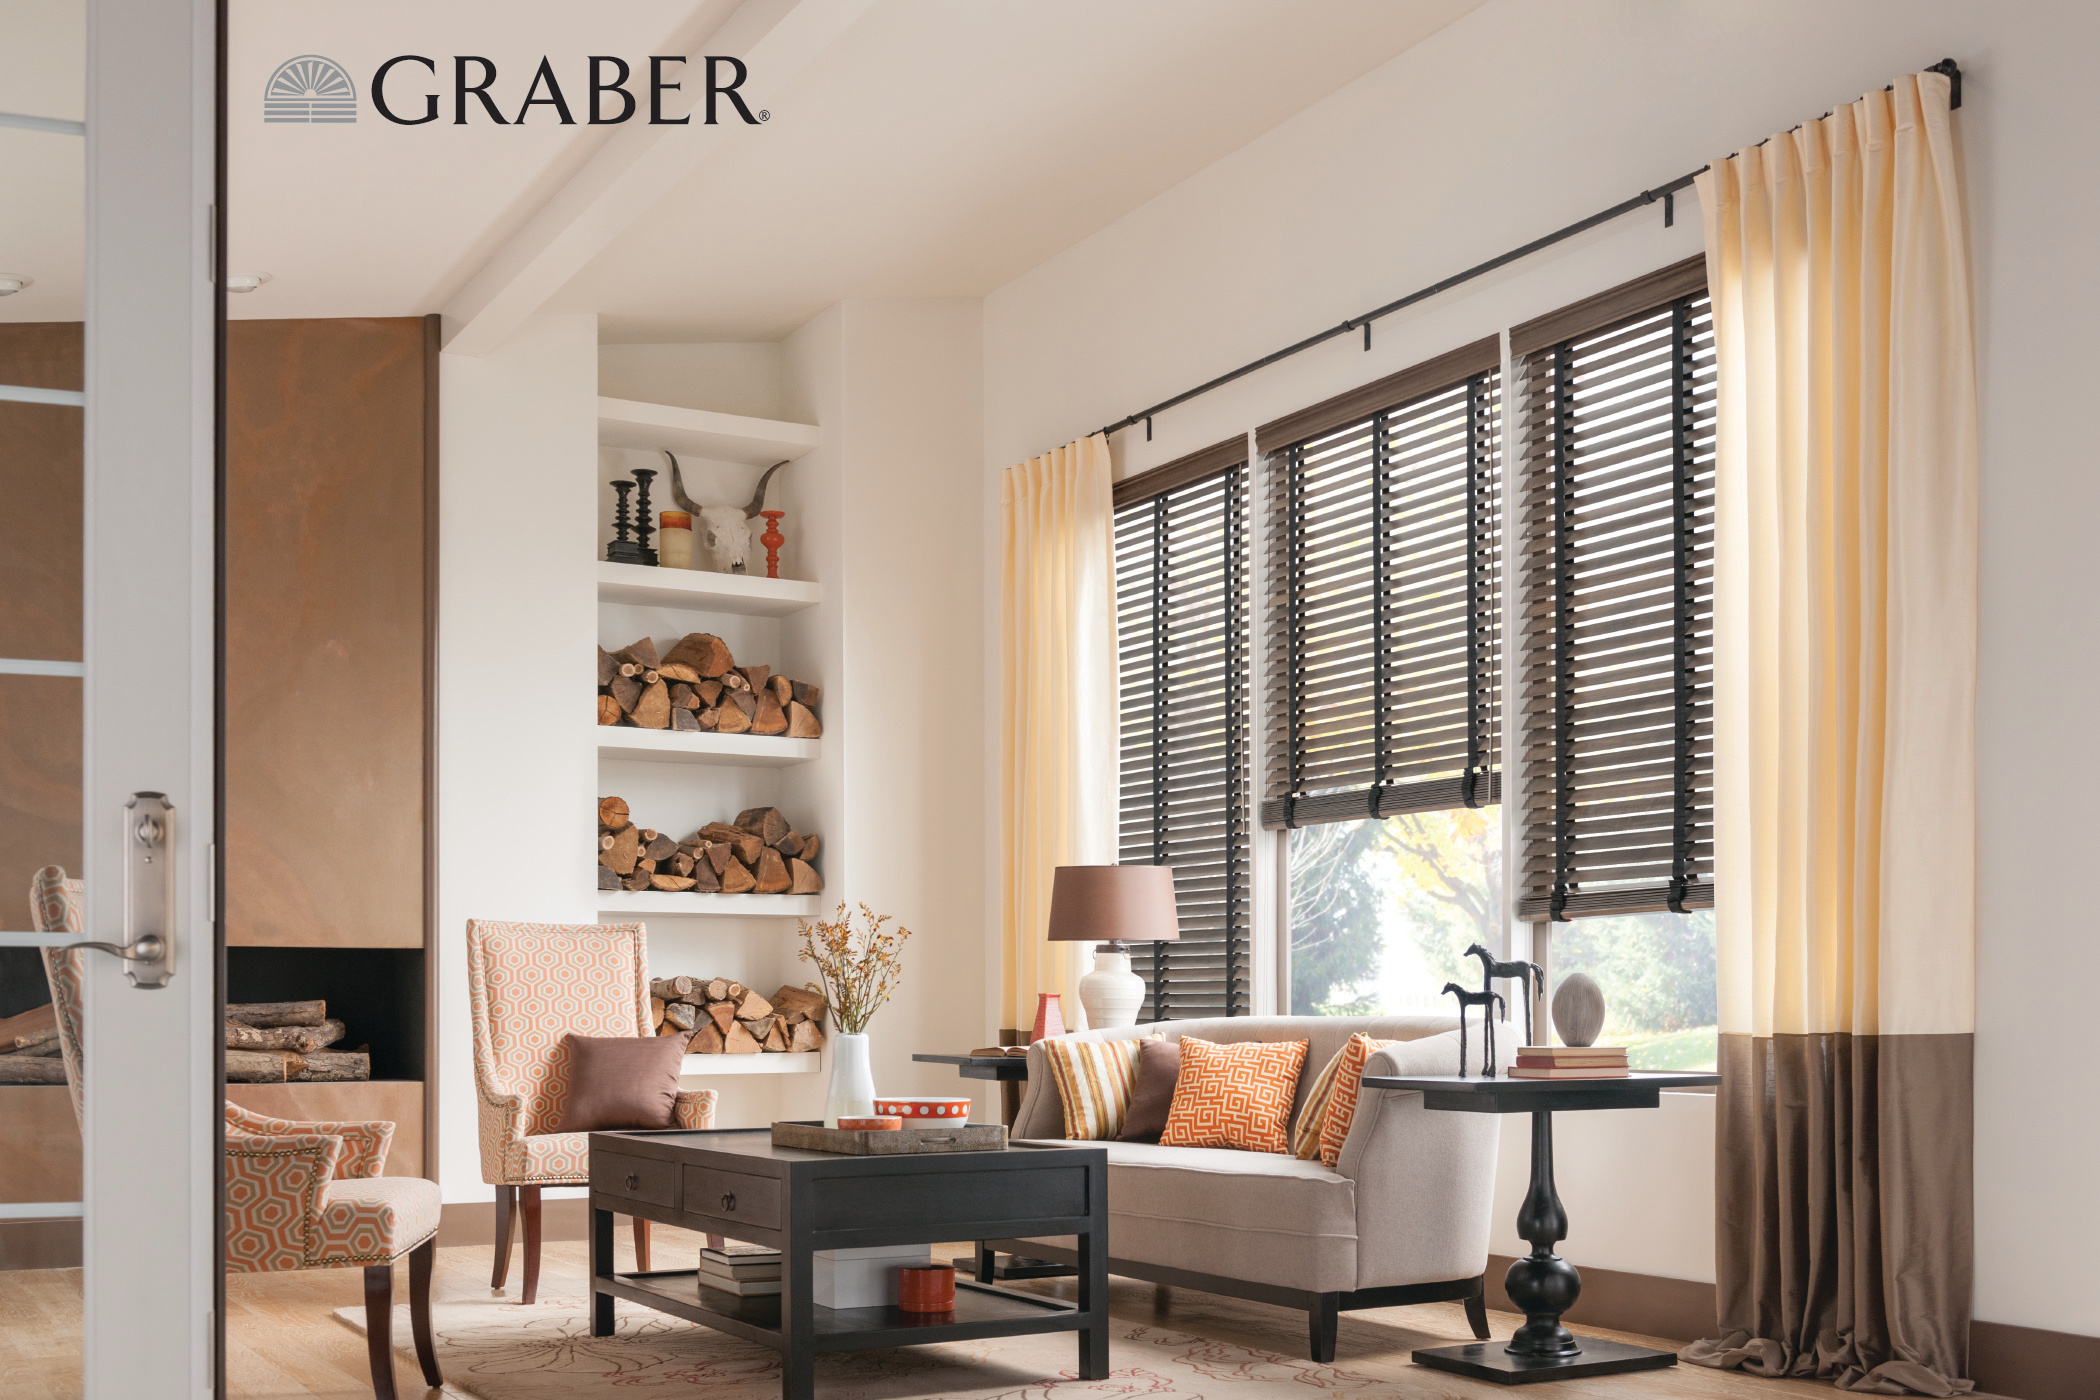 Graber Wood Shades + Drapes